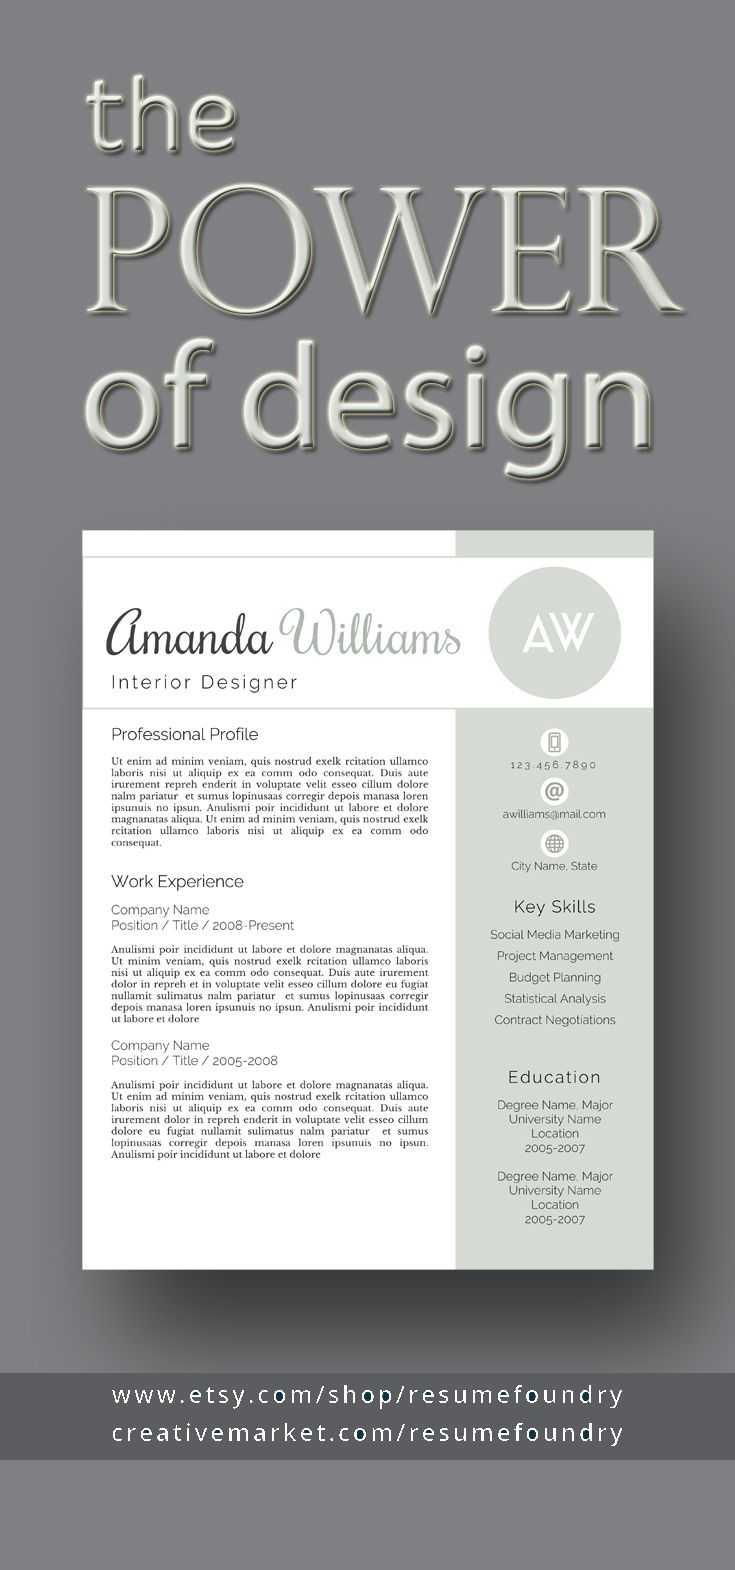 Word Cv Templates 2007%0A     best Resume Template for Instant Download images on Pinterest   Resume  templates  Cv ideas and Cv template